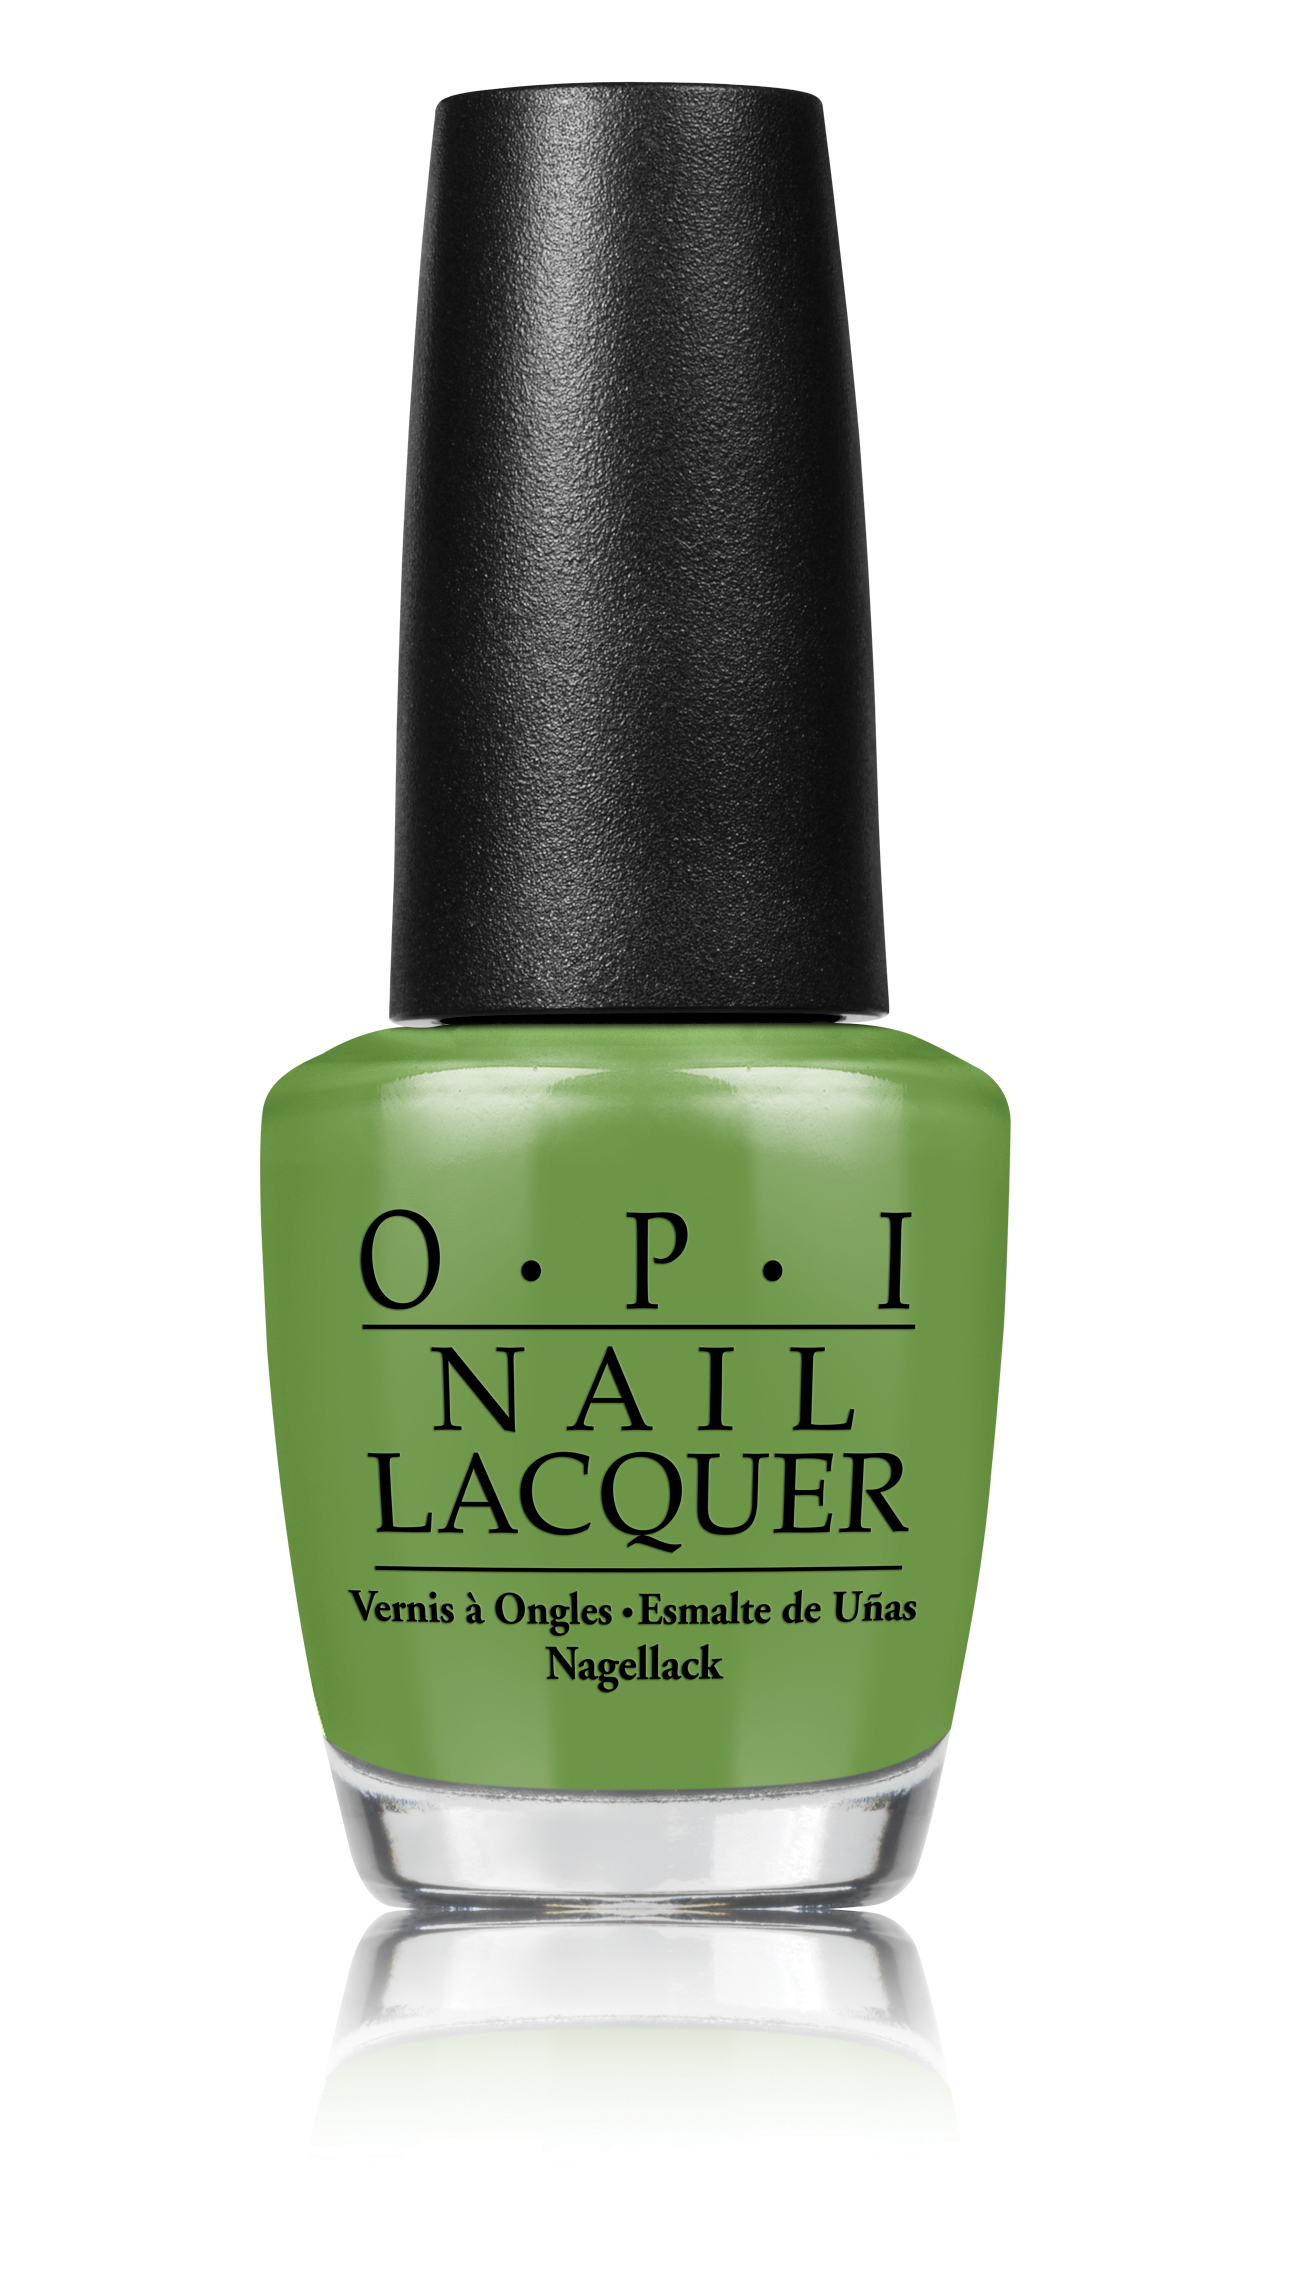 OPI Nail Lacquer in Im So Swamped - Cosmetic Sanctuary